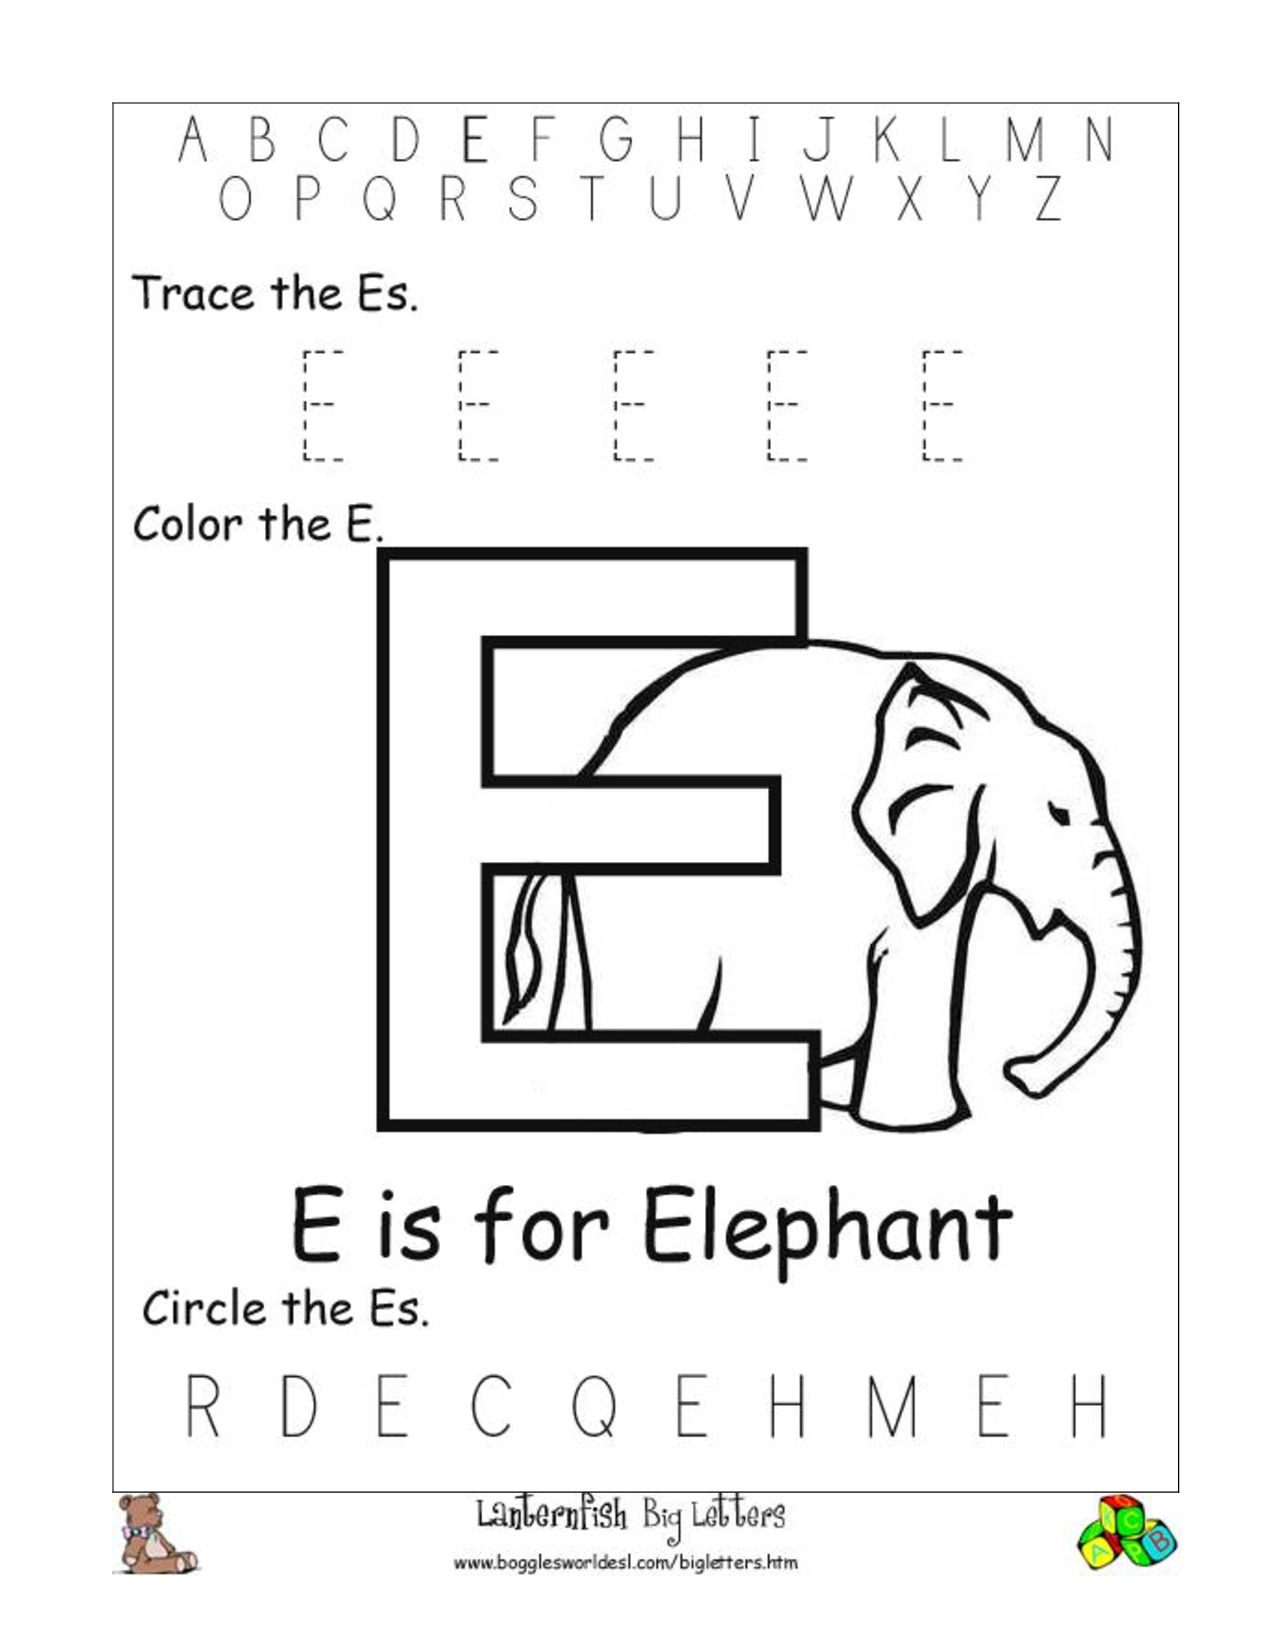 R coloring pages preschool - Find This Pin And More On Elwyn 16 17 Alphabet Worksheets For Preschoolers